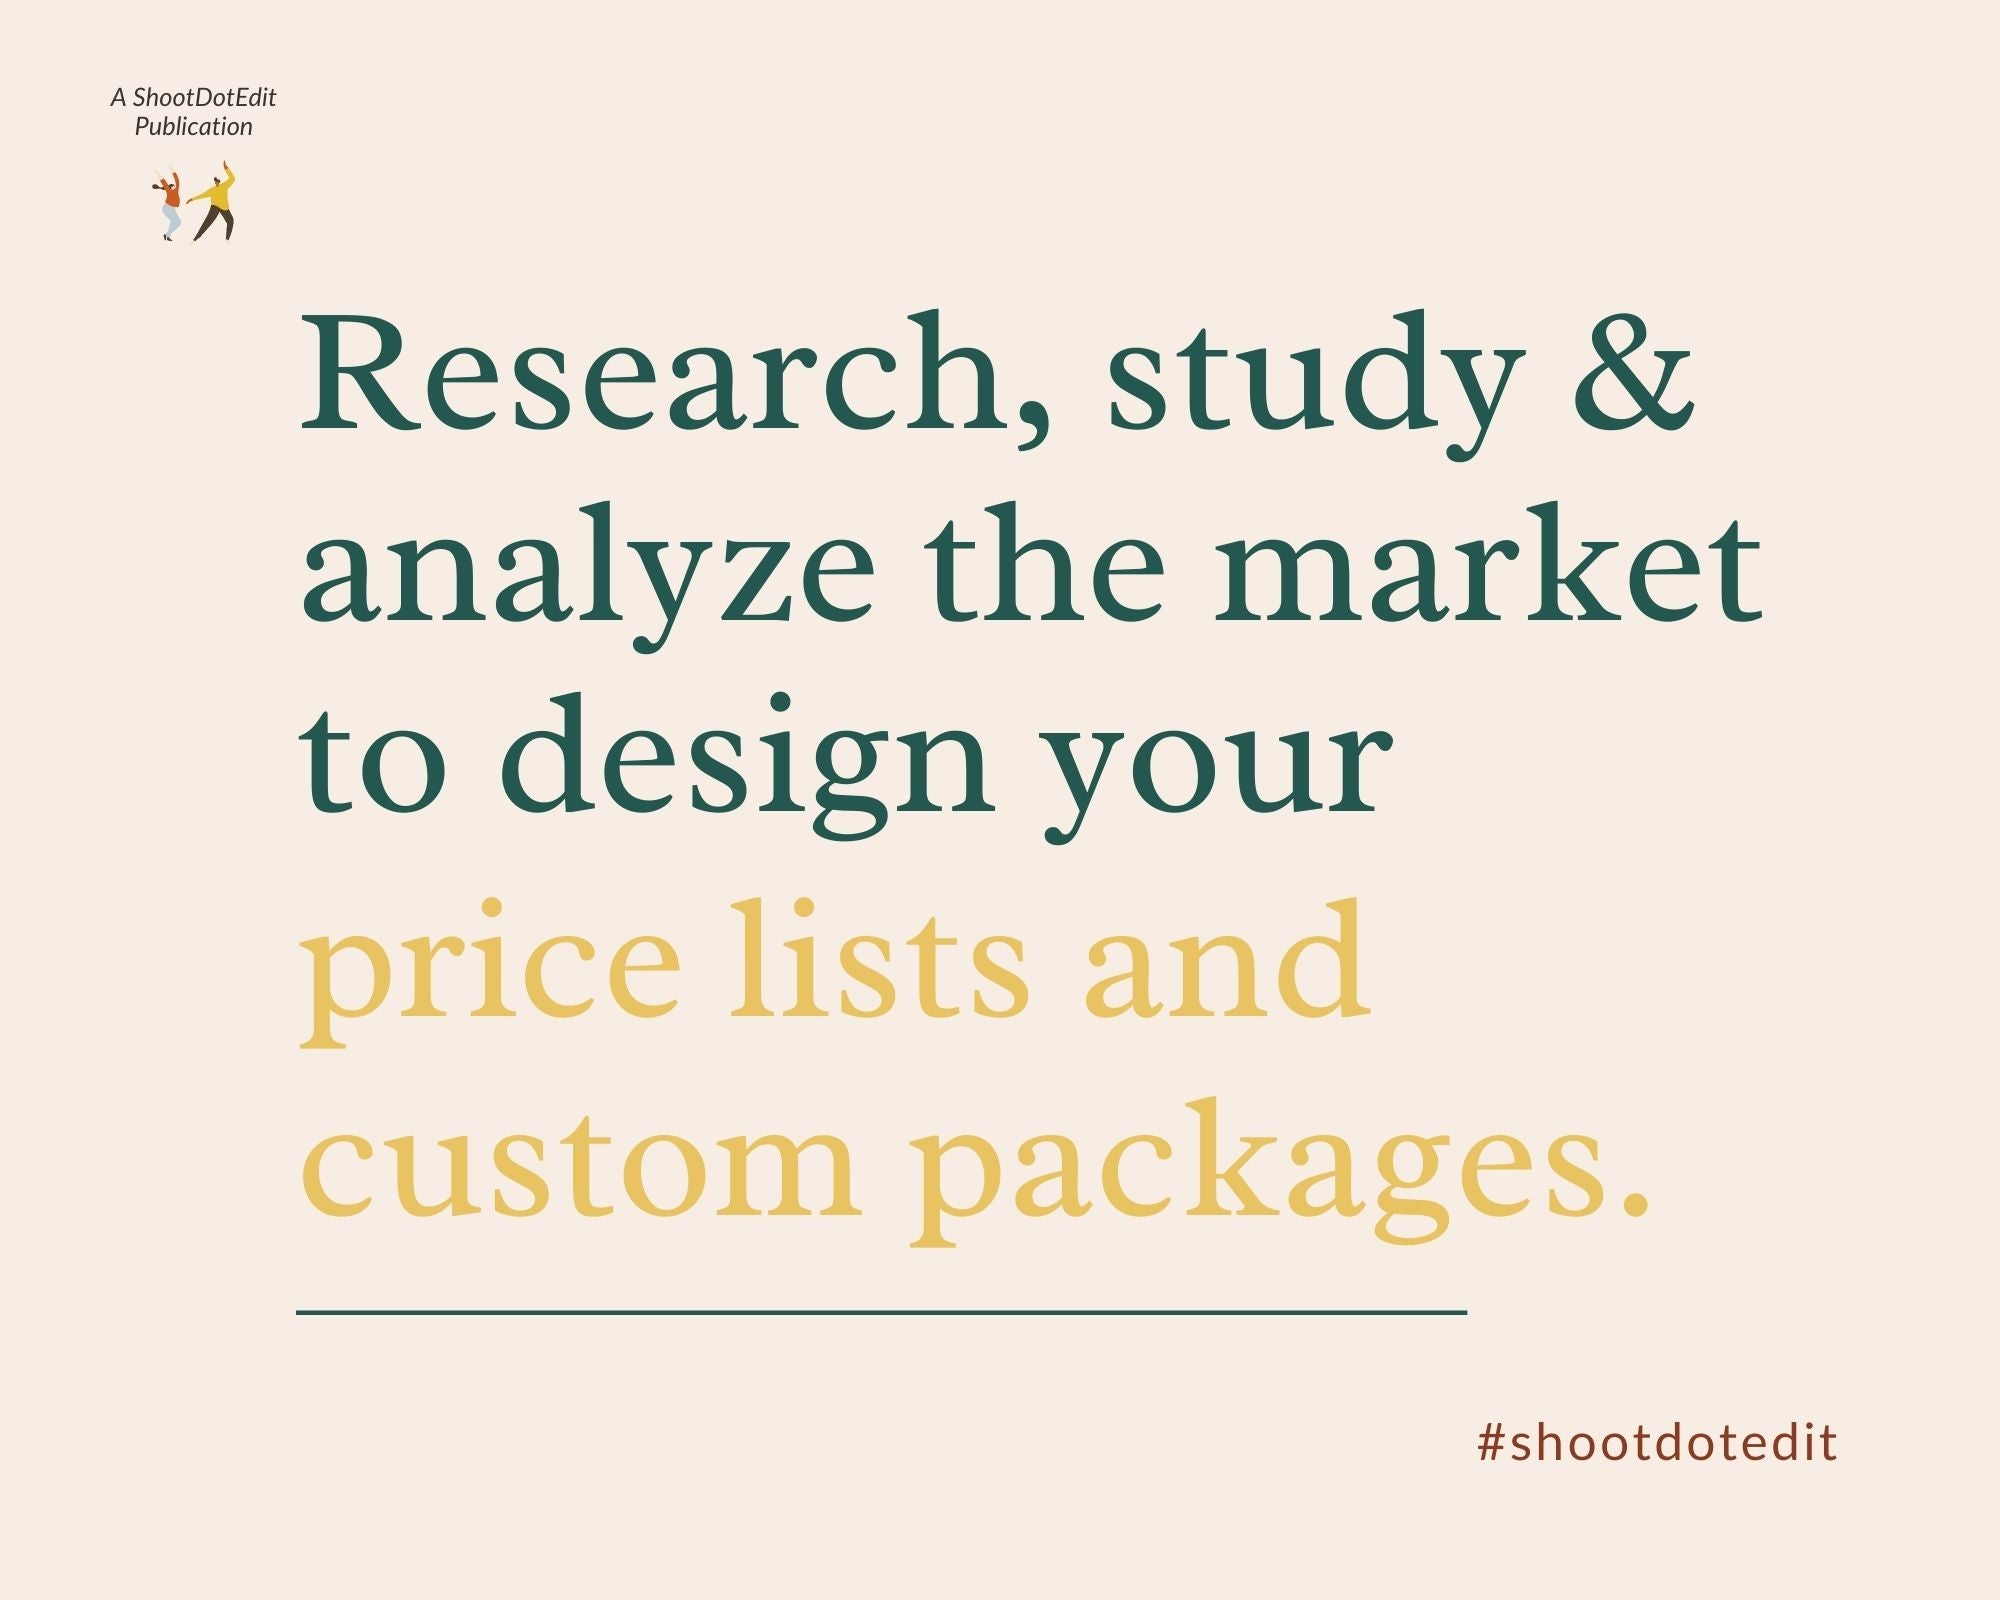 Infographic stating research, study, and analyze the market to design your price lists and custom packages